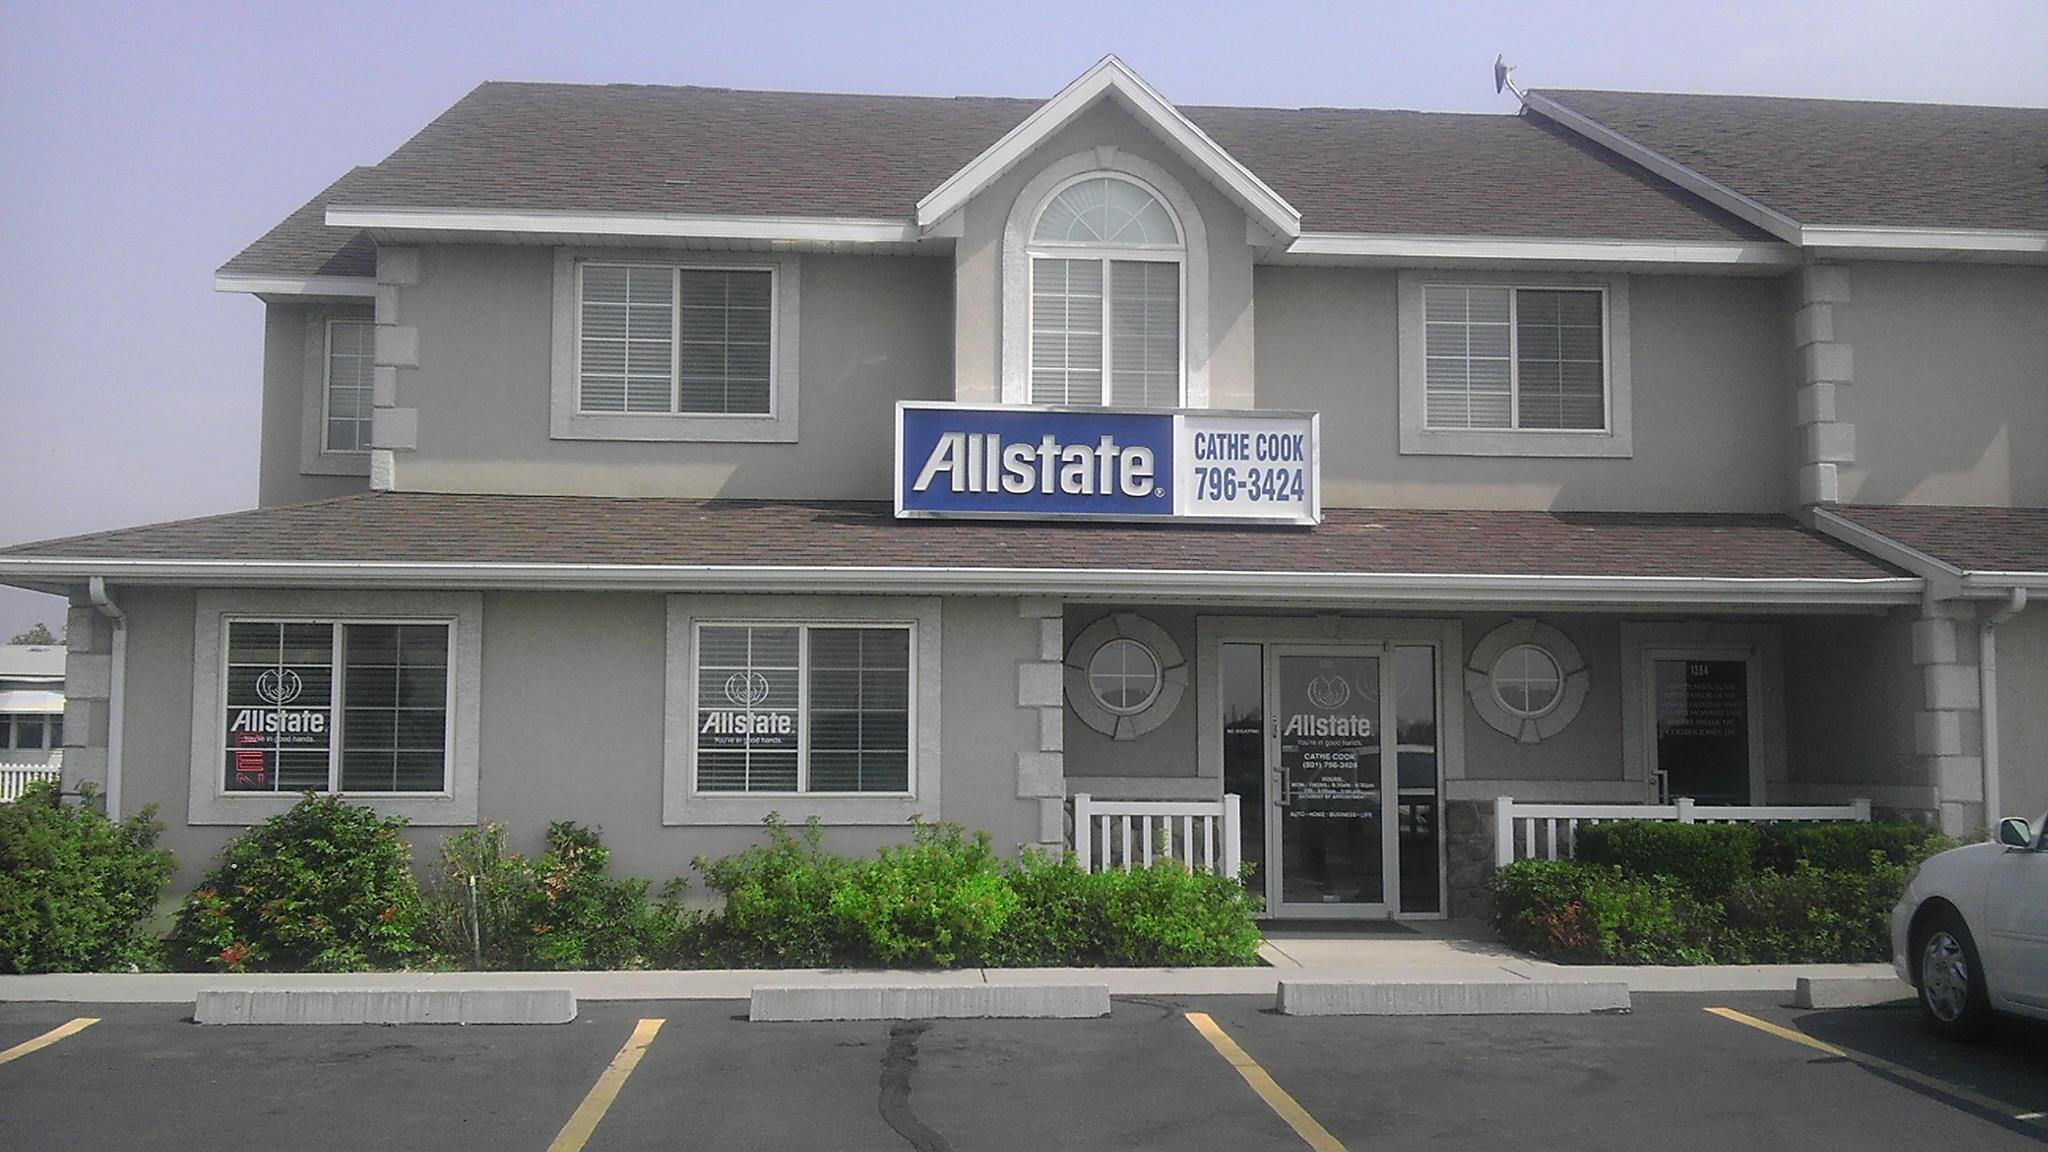 Allstate insurance agent cathe cook in pleasant grove ut for Grove motors in pleasant grove